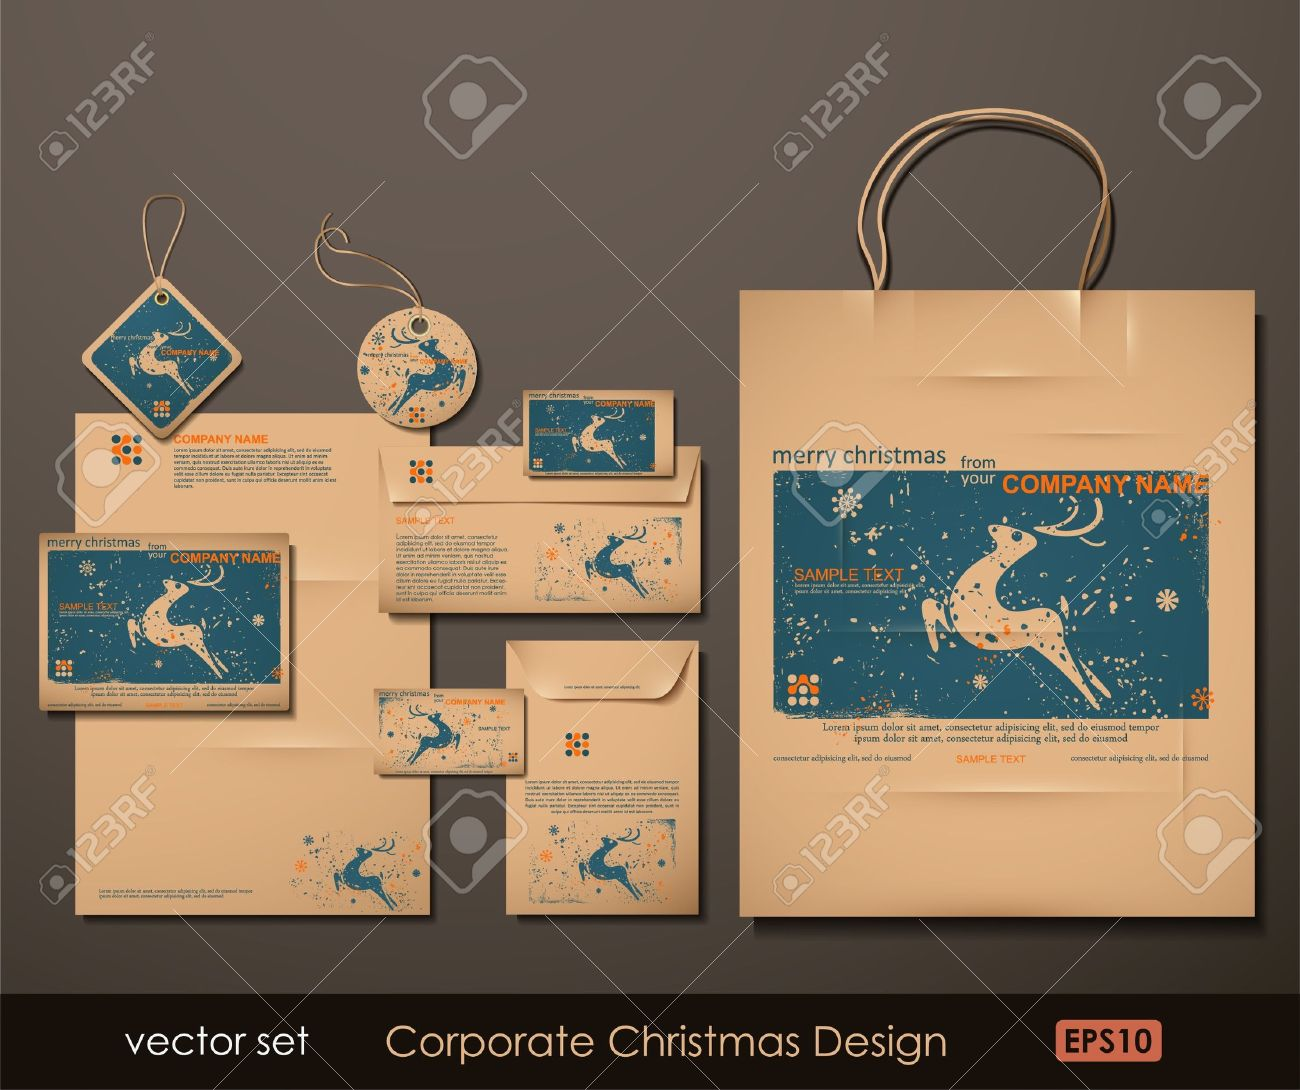 Corporate Christmas Design. Reindeer theme. Two colors different material for printing  the old fashioned way, but trendy. Print on blank brown paper. Vector Illustration. Stock Vector - 10631891